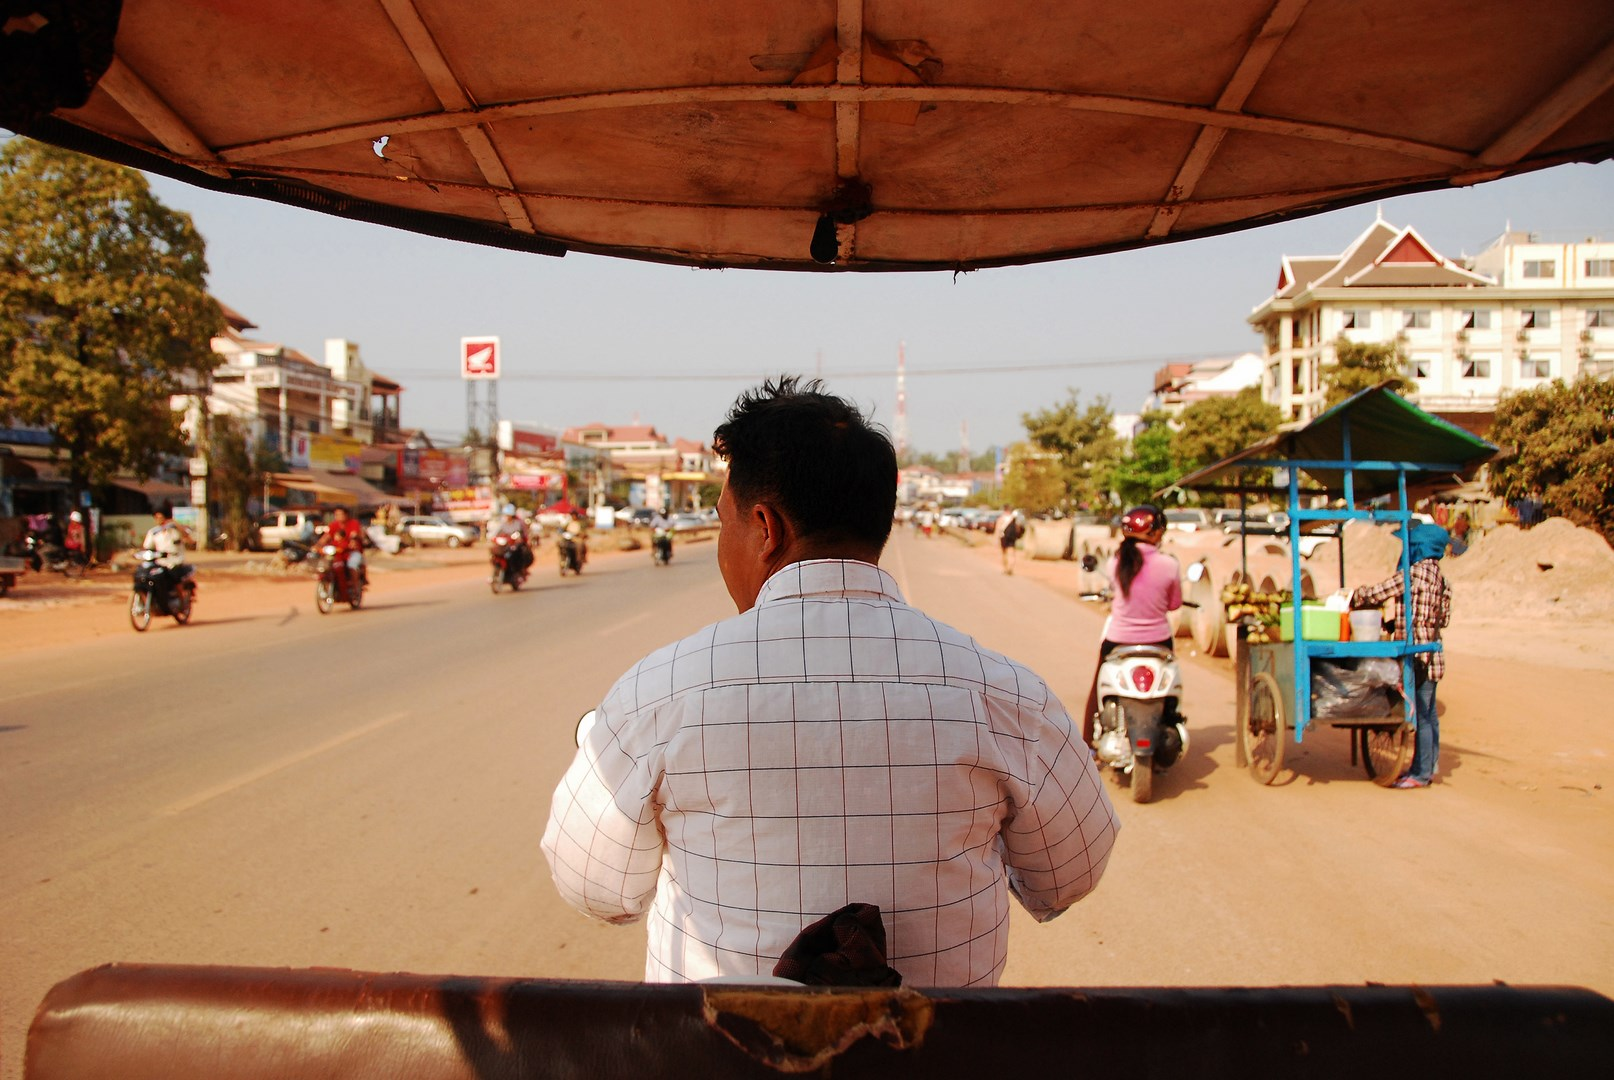 holly_siemreap_tuktukdriverprofile-Copy.jpg